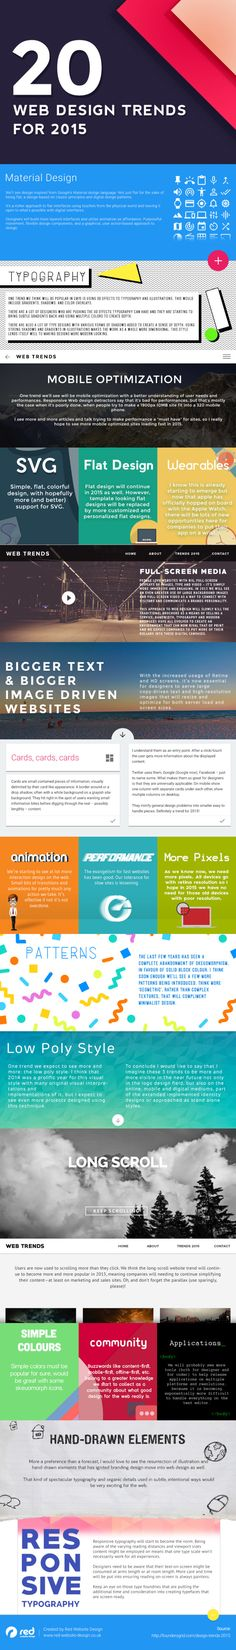 20 Web Design Trends for 2015 #infographic #WebDesign #Website